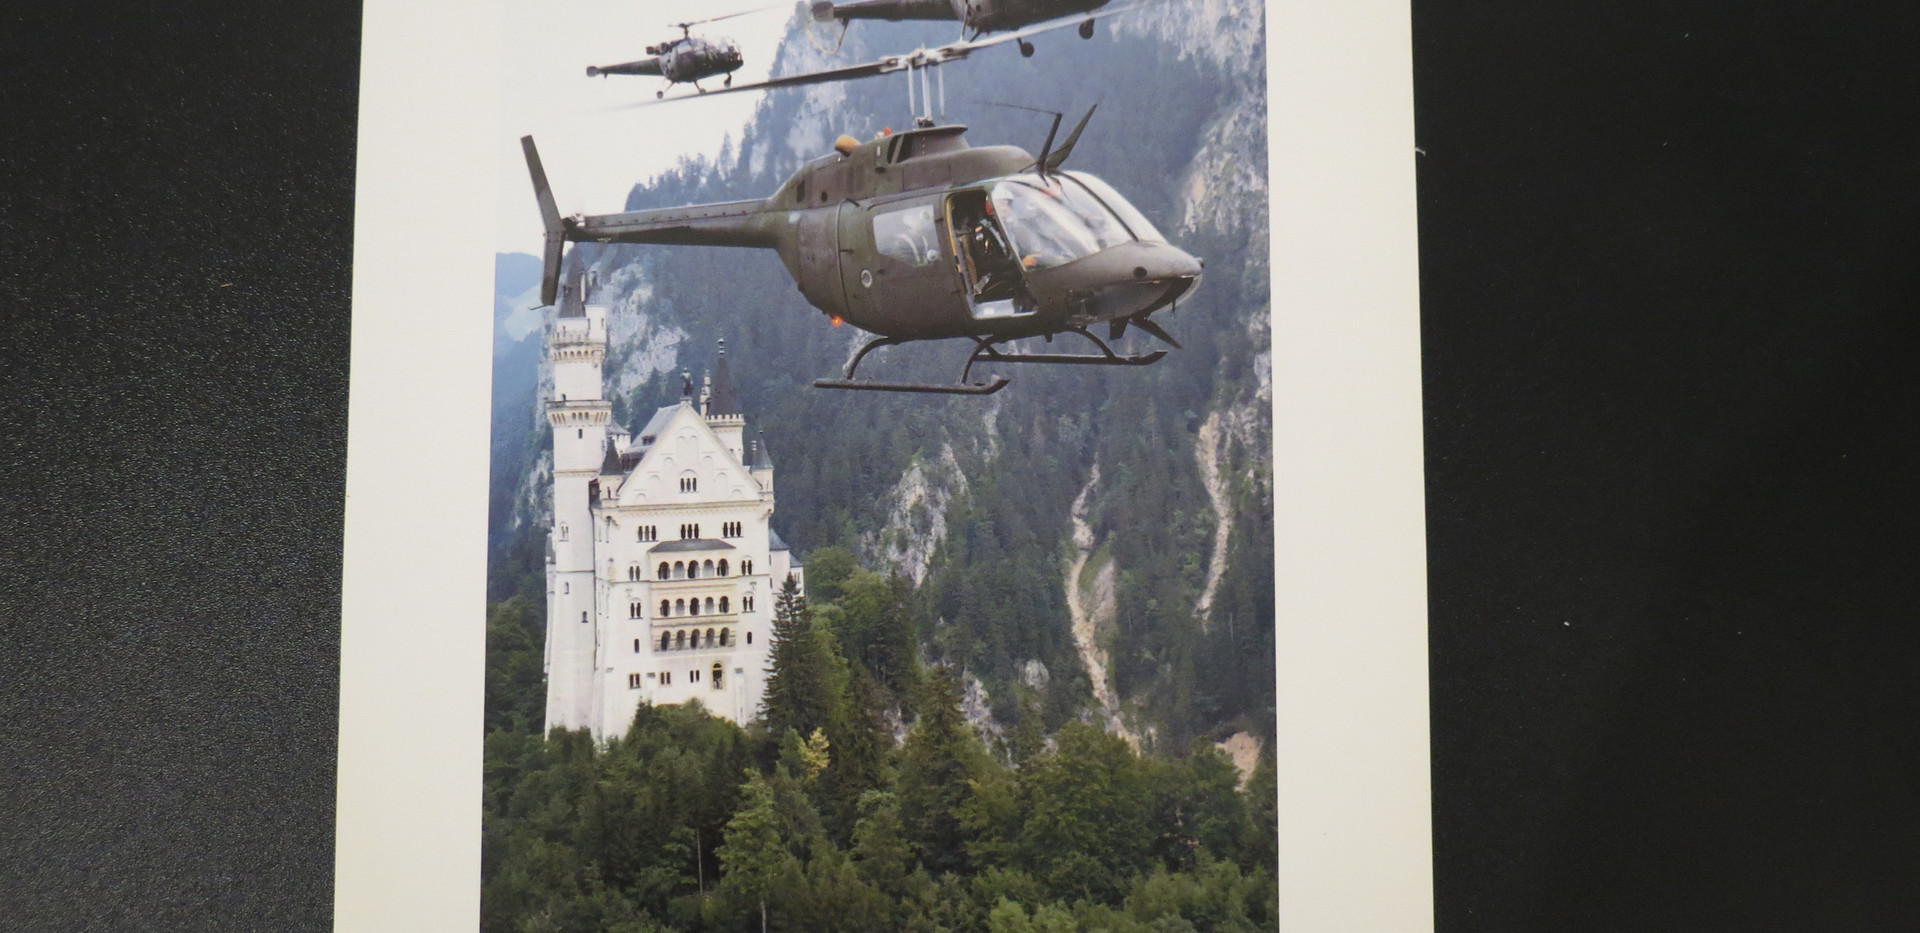 NATO helicopter poster